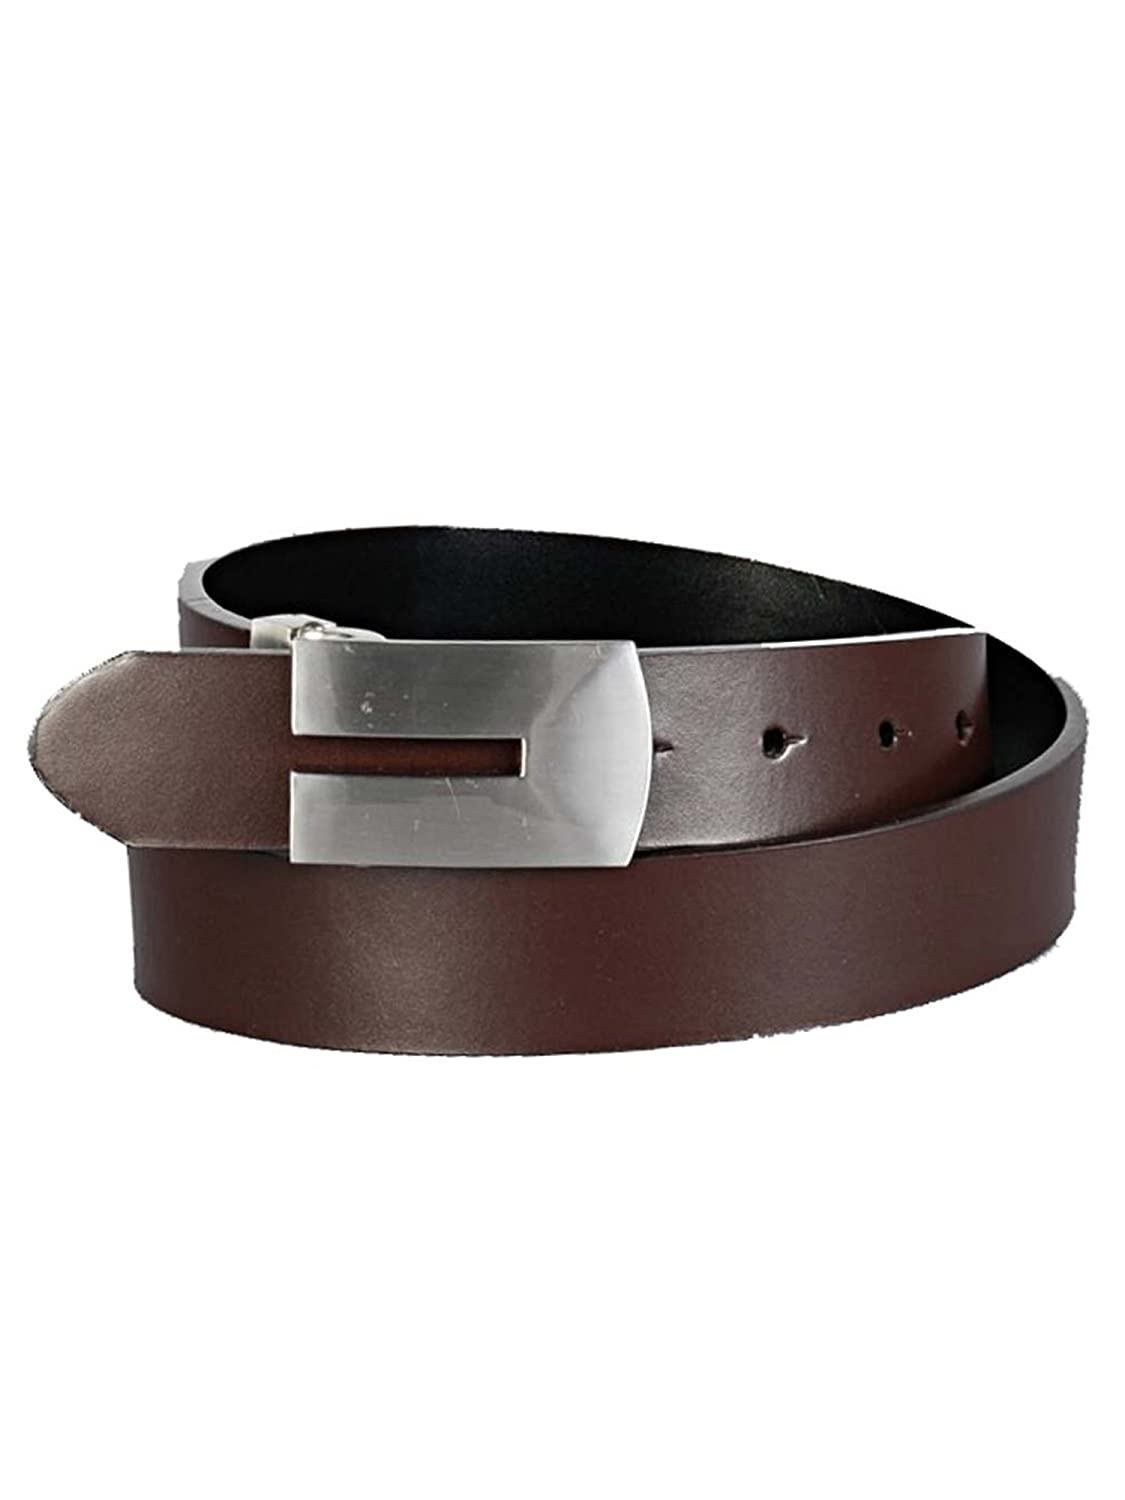 MenS Dress Belt With Cut-Out Chrome Buckle